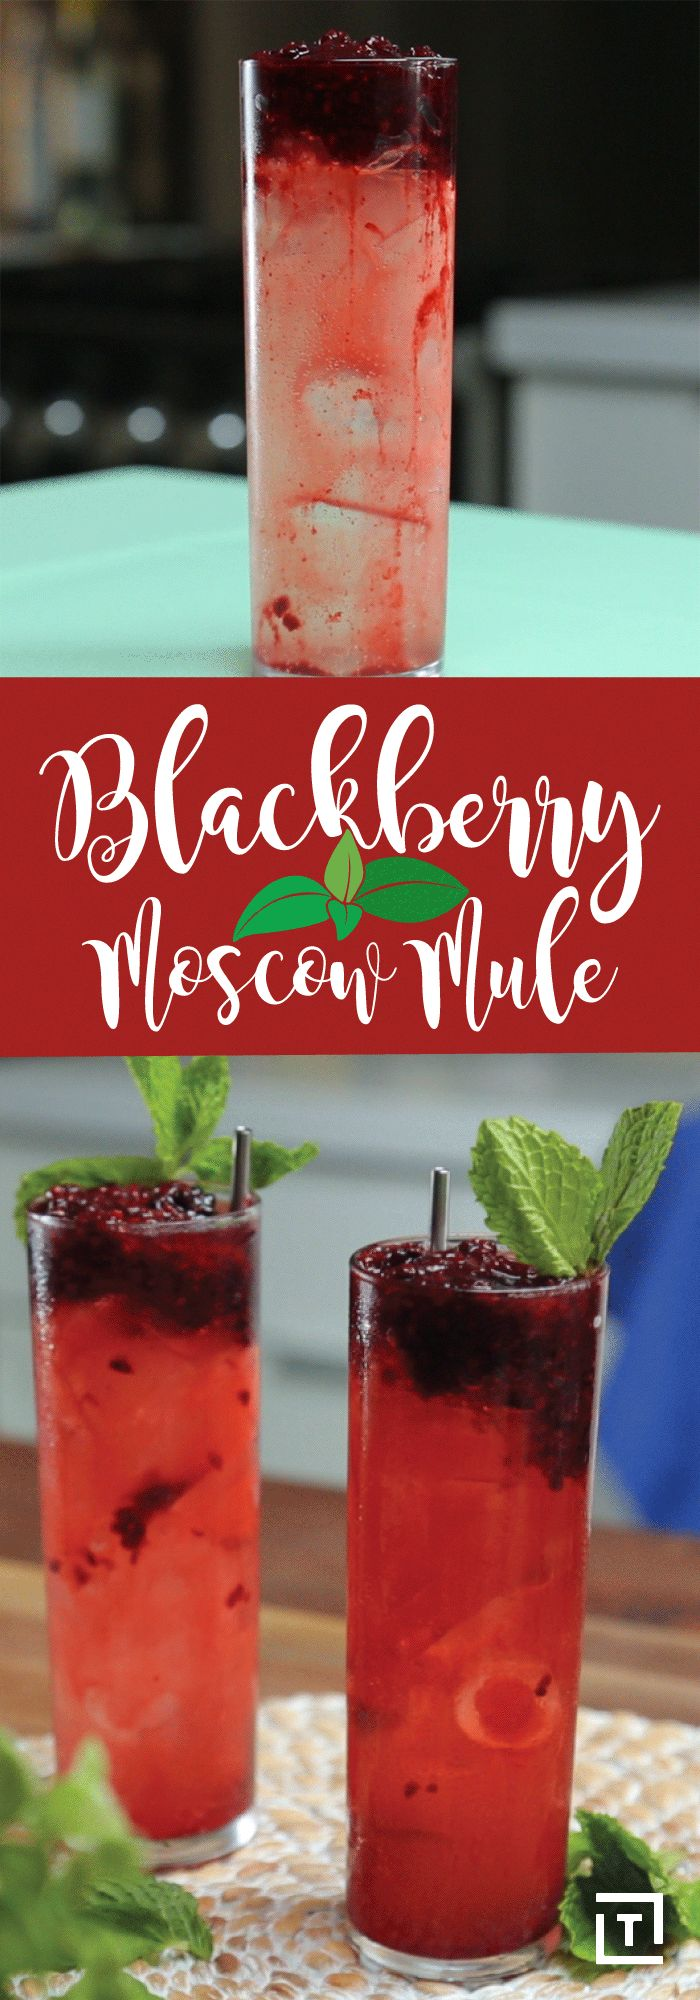 Serena Bakes Simply from Scratch inspired us to take a fruity Moscow mule and give it a fall twist. Made with blackberries, vodka, ginger beer, cinnamon, cloves, and star anise, this mule is the perfect cocktail to help you make the move from summer to fall.